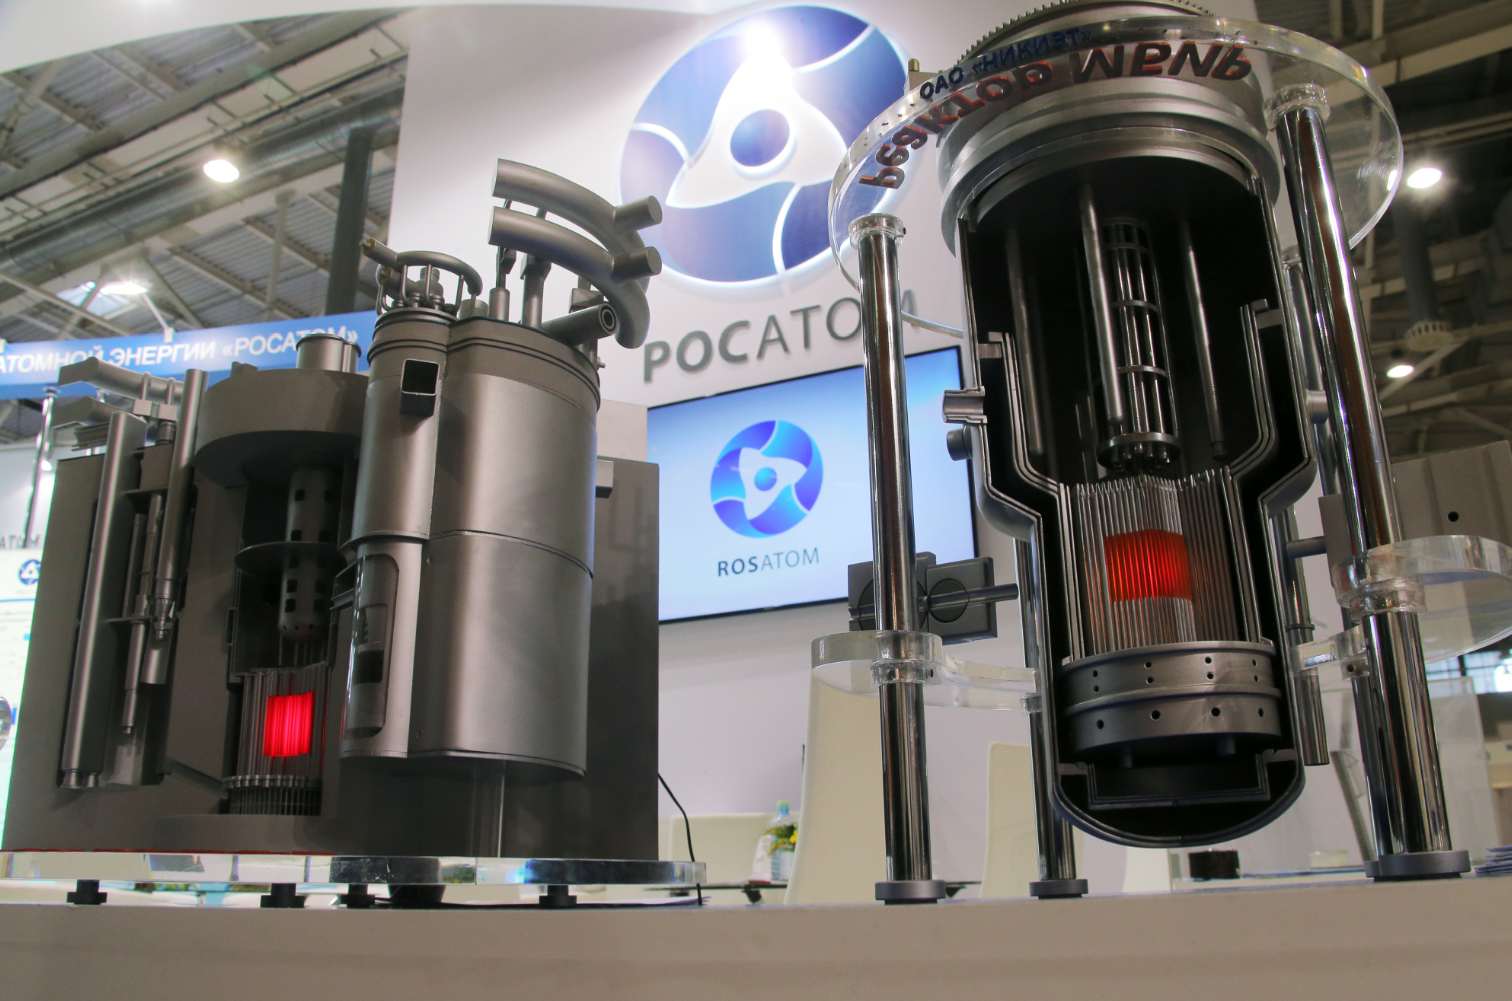 "Models of nuclear reactors BREST and MBIR at Rosatom's stand at the 11th National Forum and Exhibition ""Goszakaz - 2015"" (state procurement) at the VDNKh national economic achievements exhibition in Moscow."